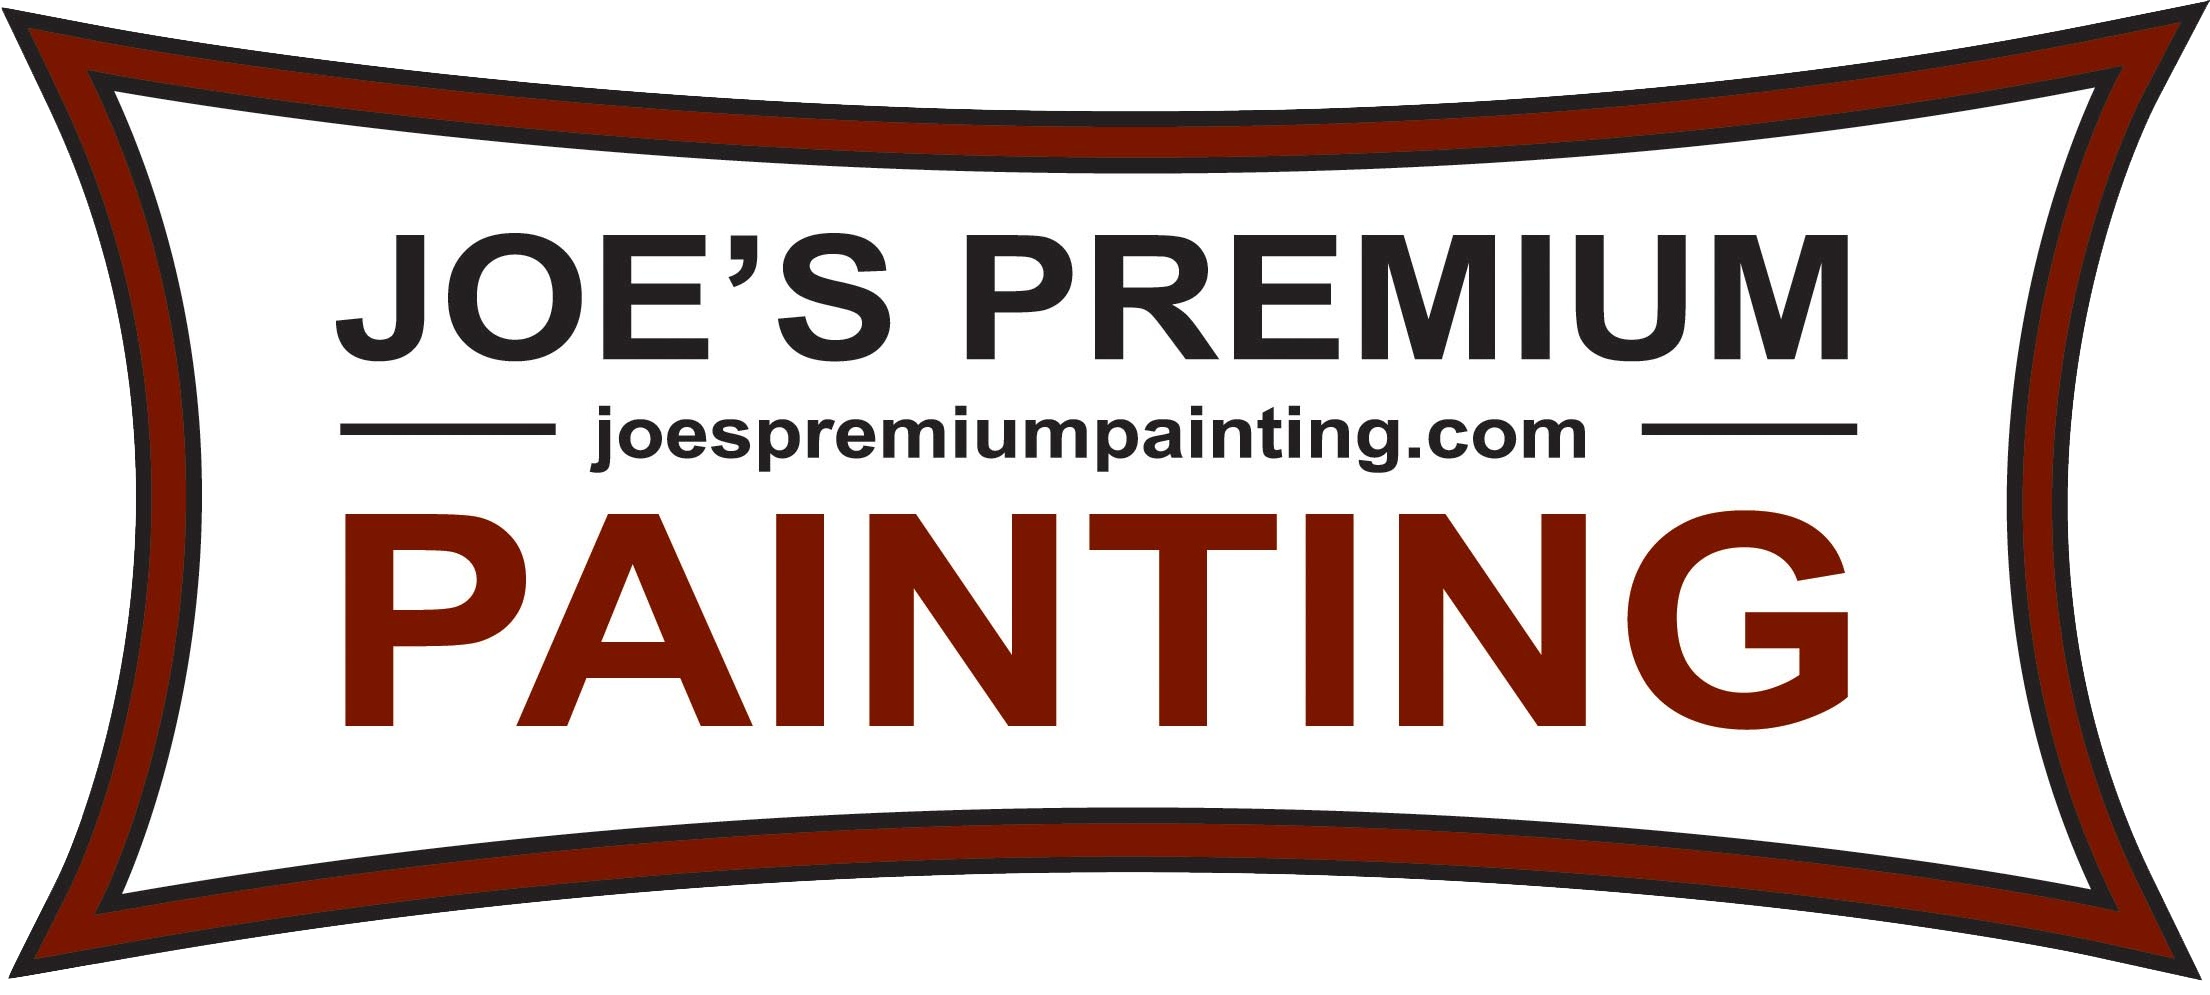 Joe's Premium Painting, Cerritos